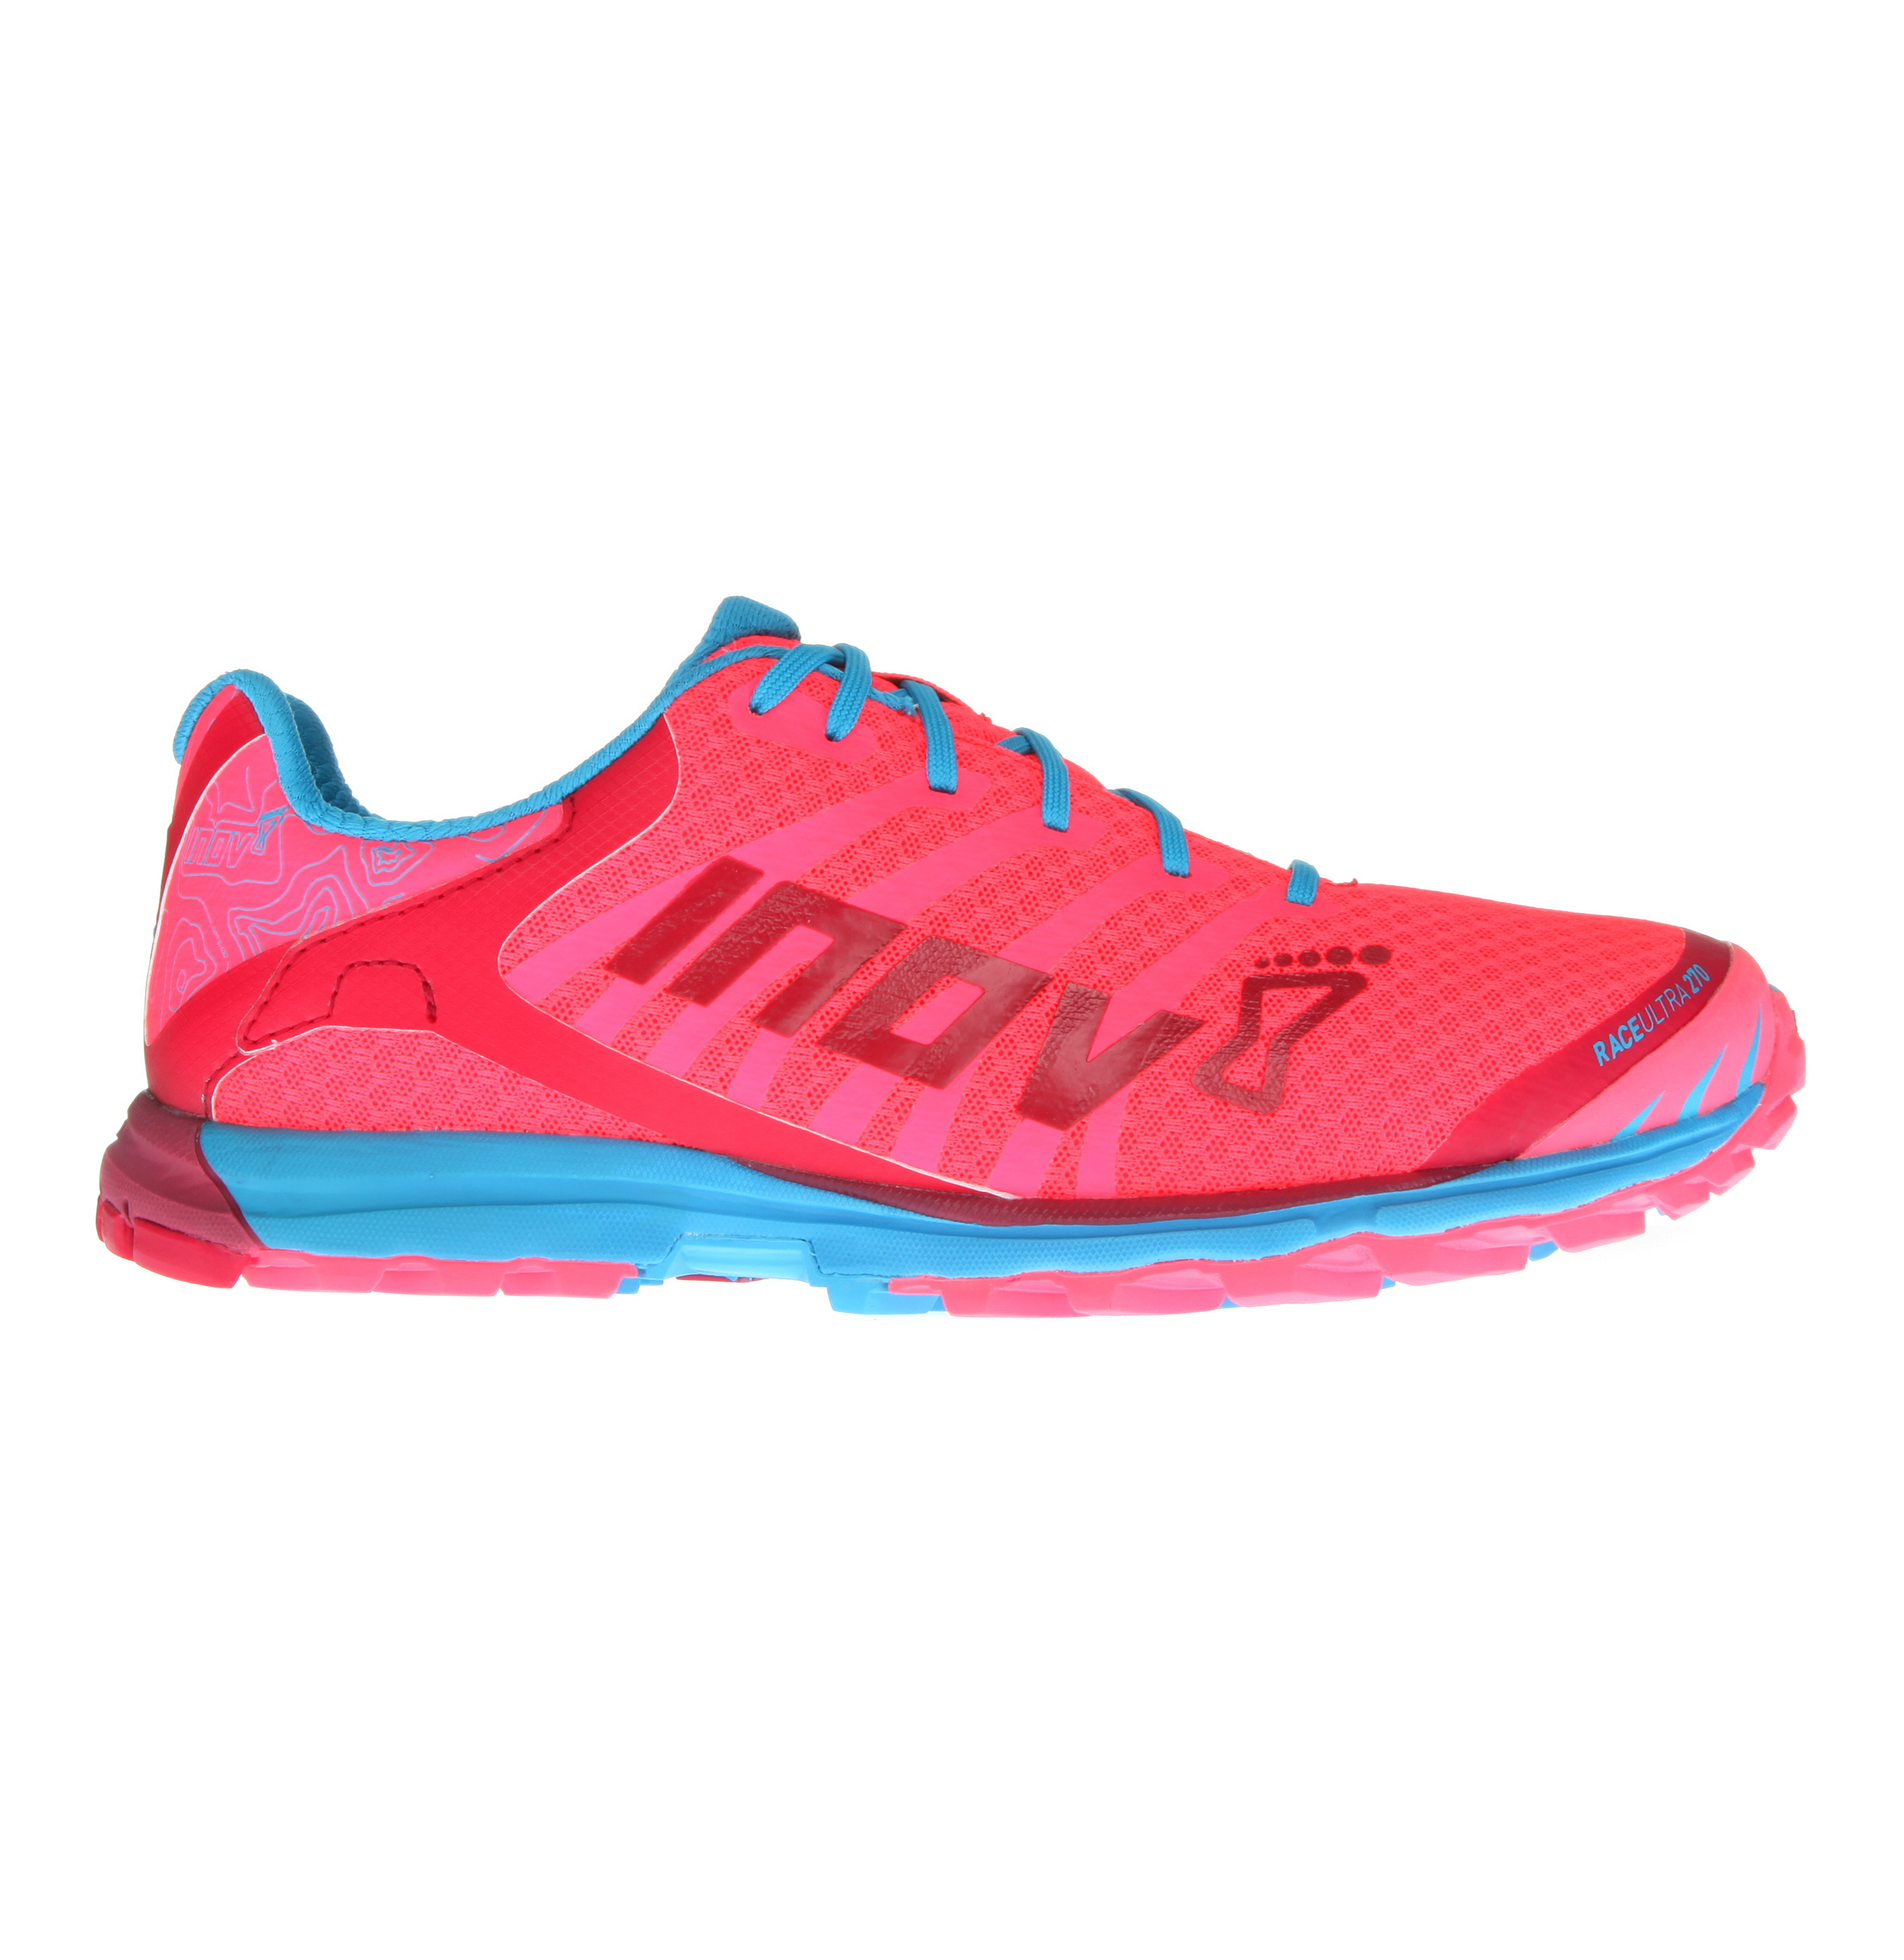 af1e0f29 Details about Inov-8 Race Ultra 270 Womens Off Road Hard & Rocky Trail  Running Sneakers Shoes